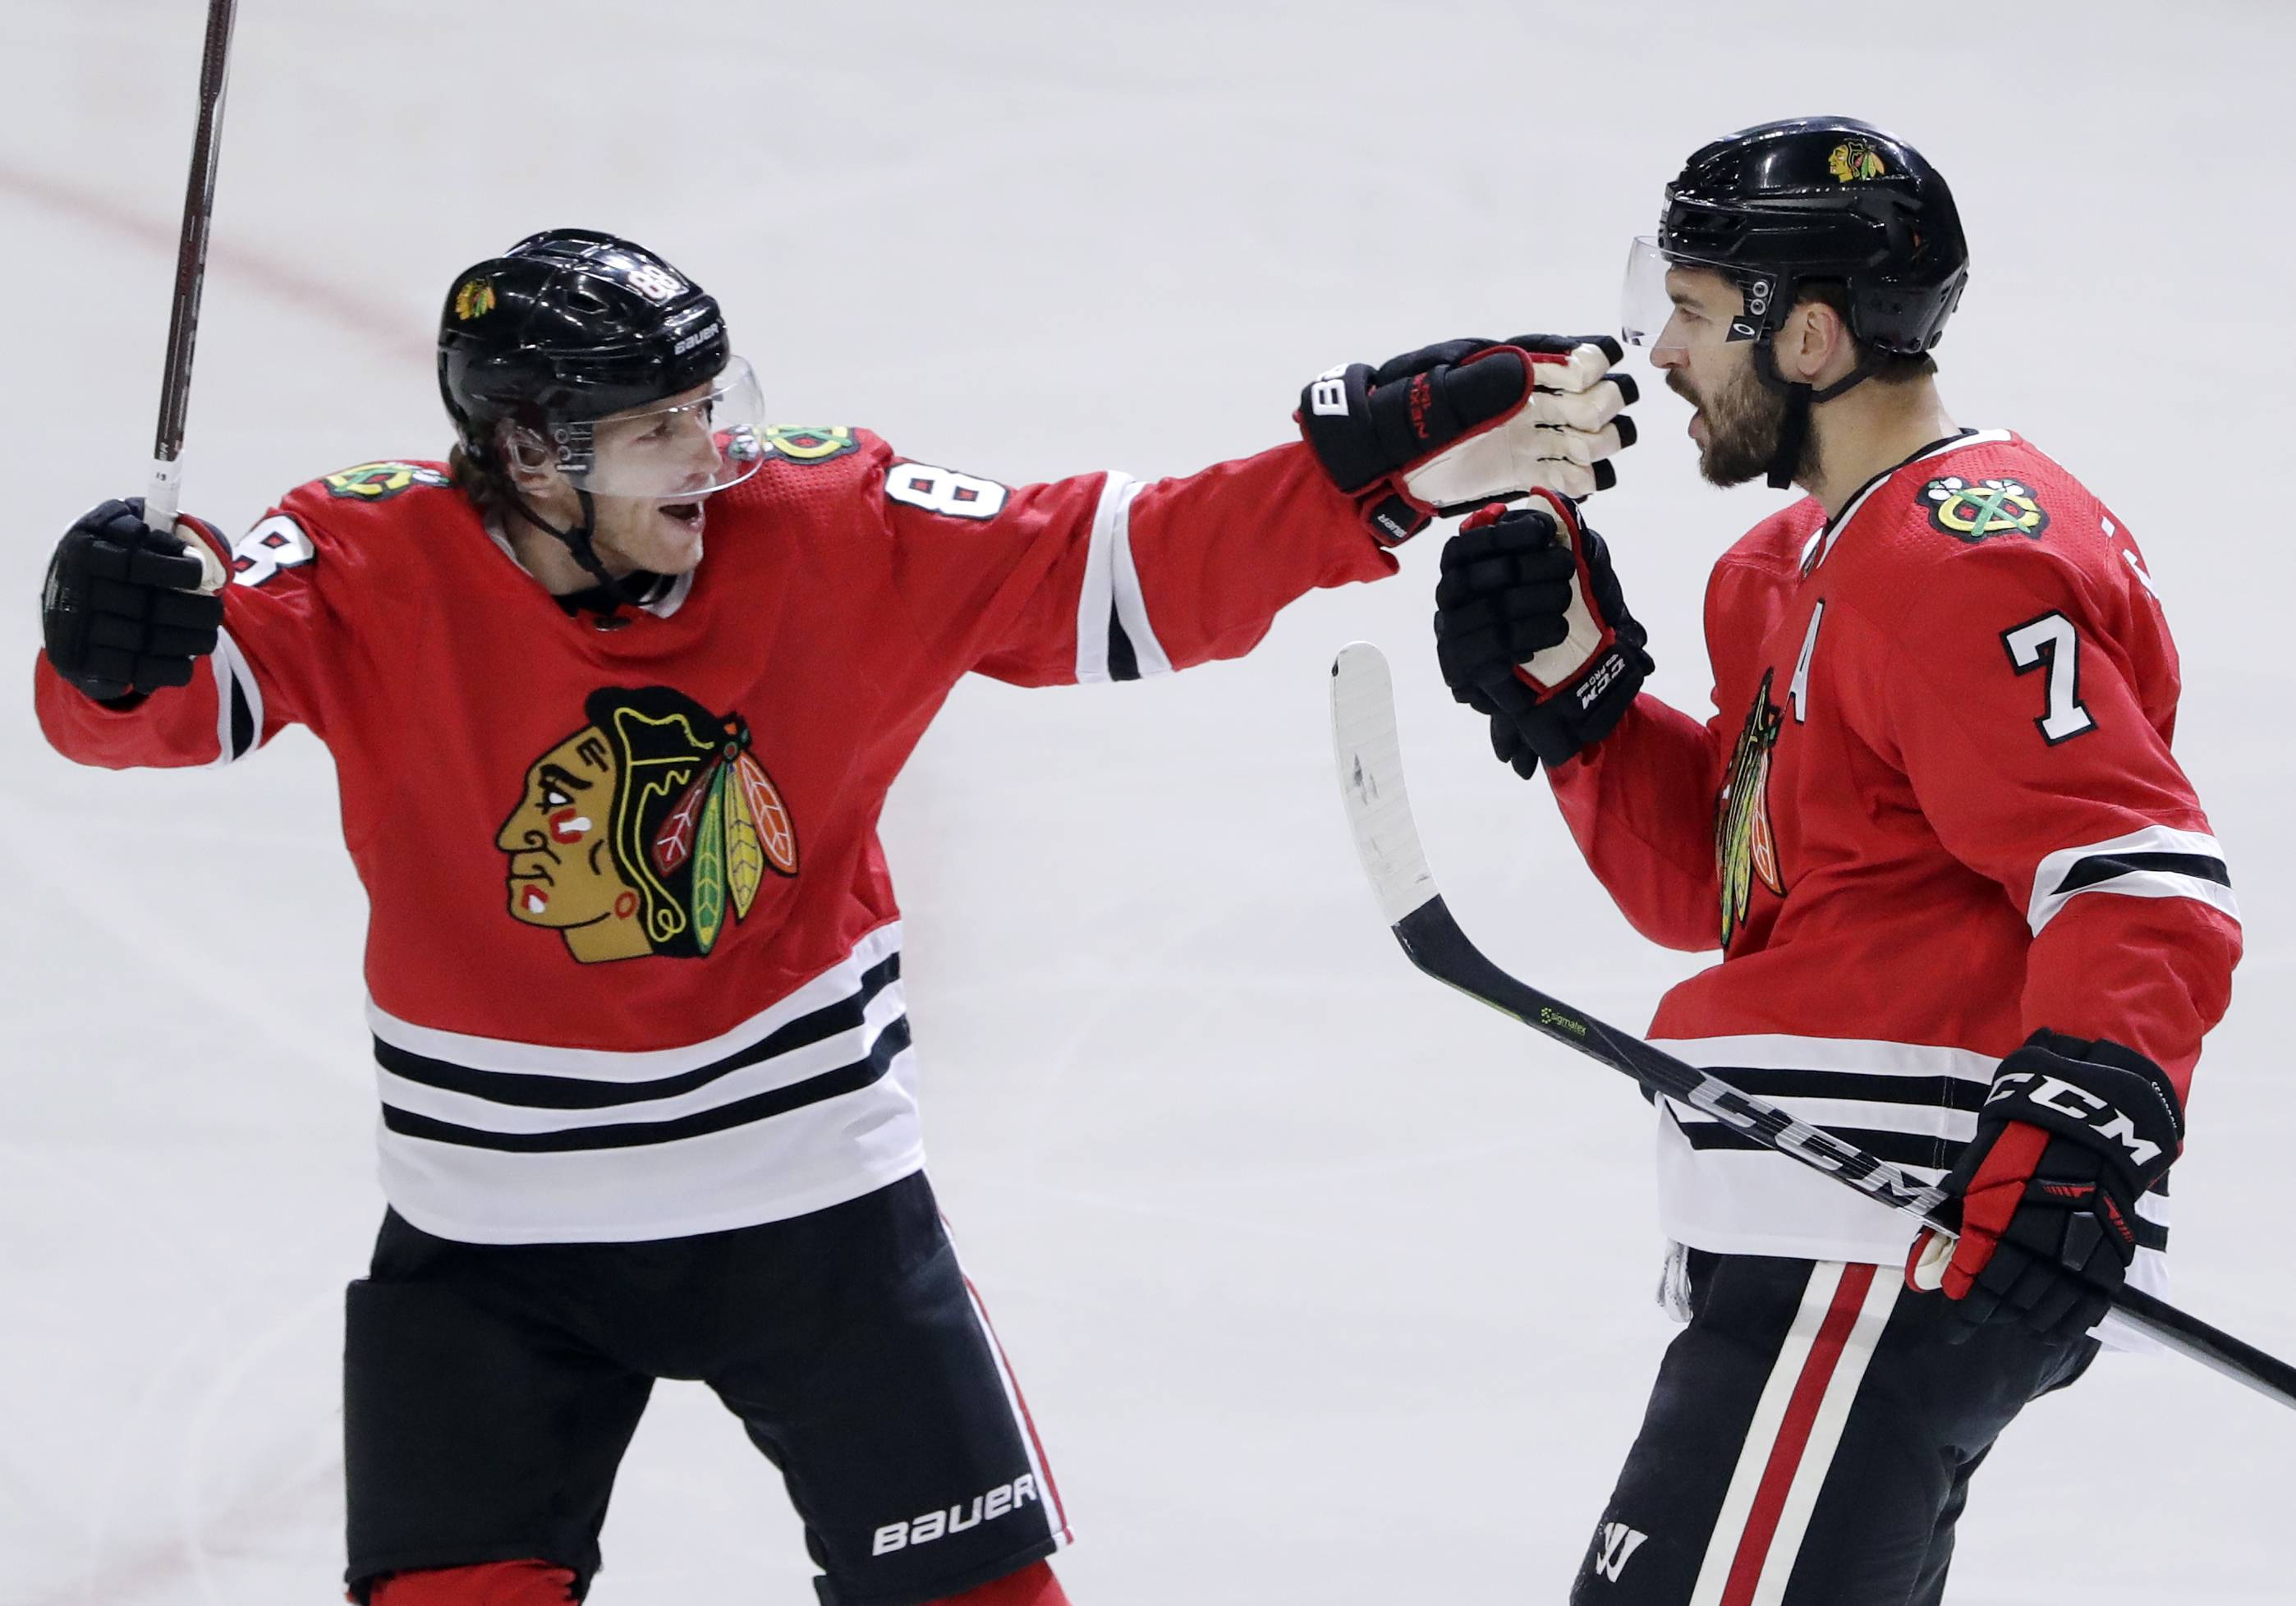 Defenseman Brent Seabrook, right, celebrates with right wing Patrick Kane after scoring against the Toronto Maple Leafs during the first period on Wednesday. In an effort to cure the ills of their dismal power play, the Hawks bounced ideas off each other after practice Tuesday. The Hawks went 2-for-4 on the power play in their 3-2 overtime loss the Leafs on Wednesday.